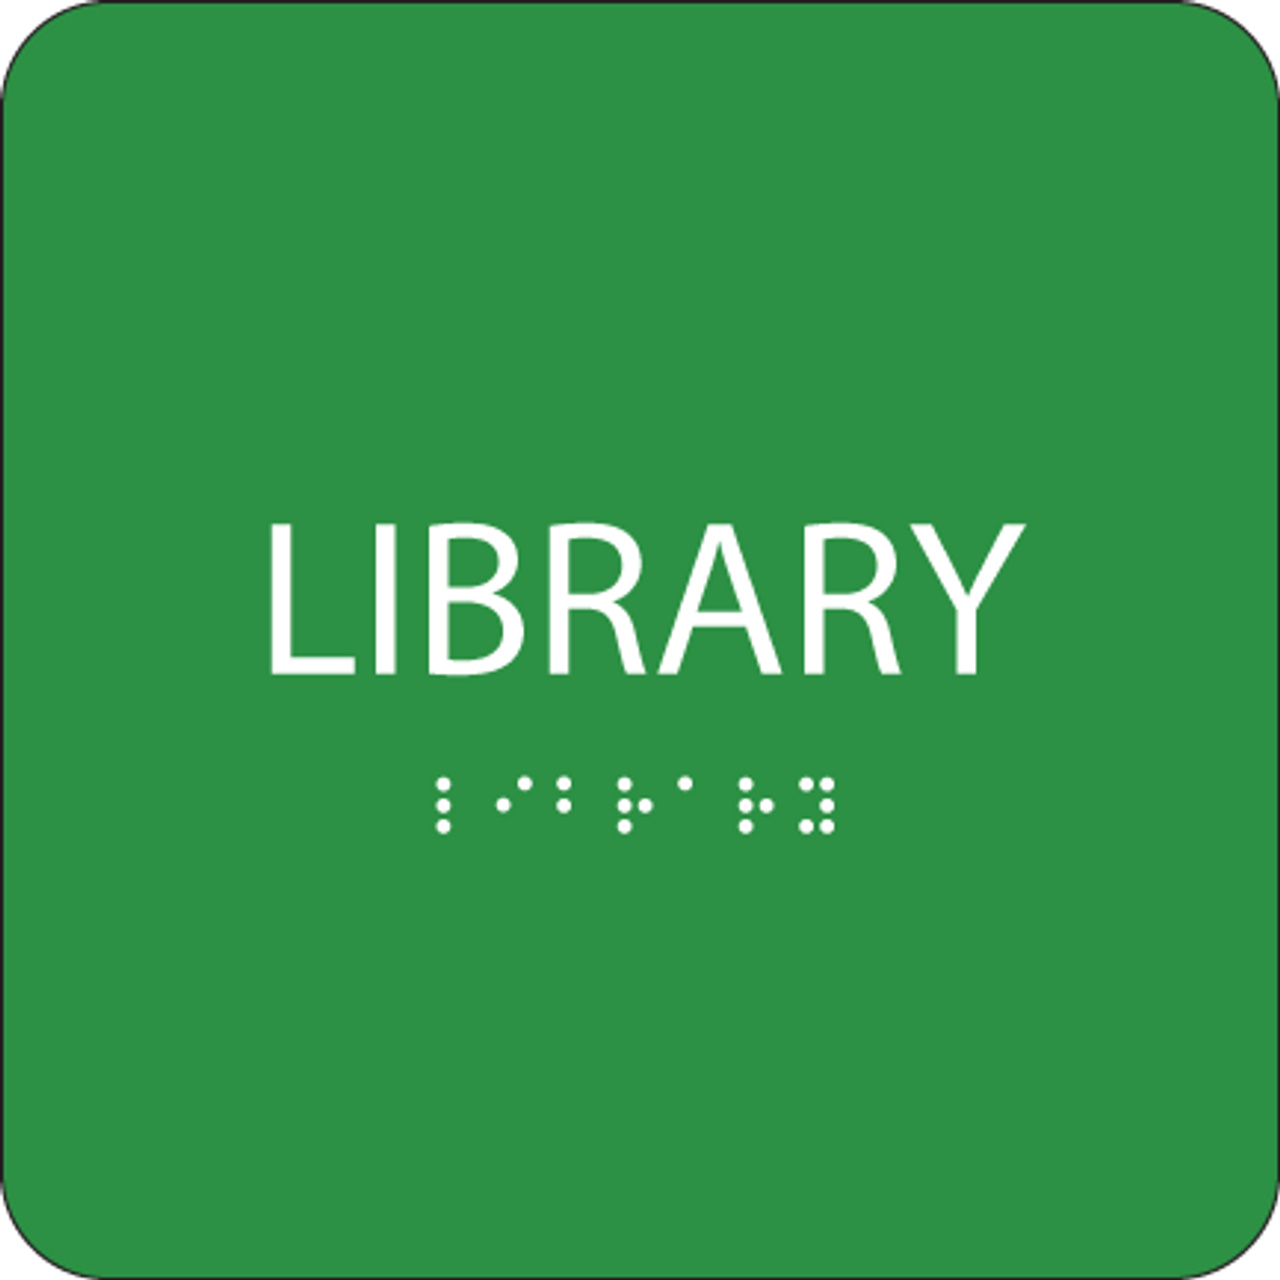 Green Library Braille Sign